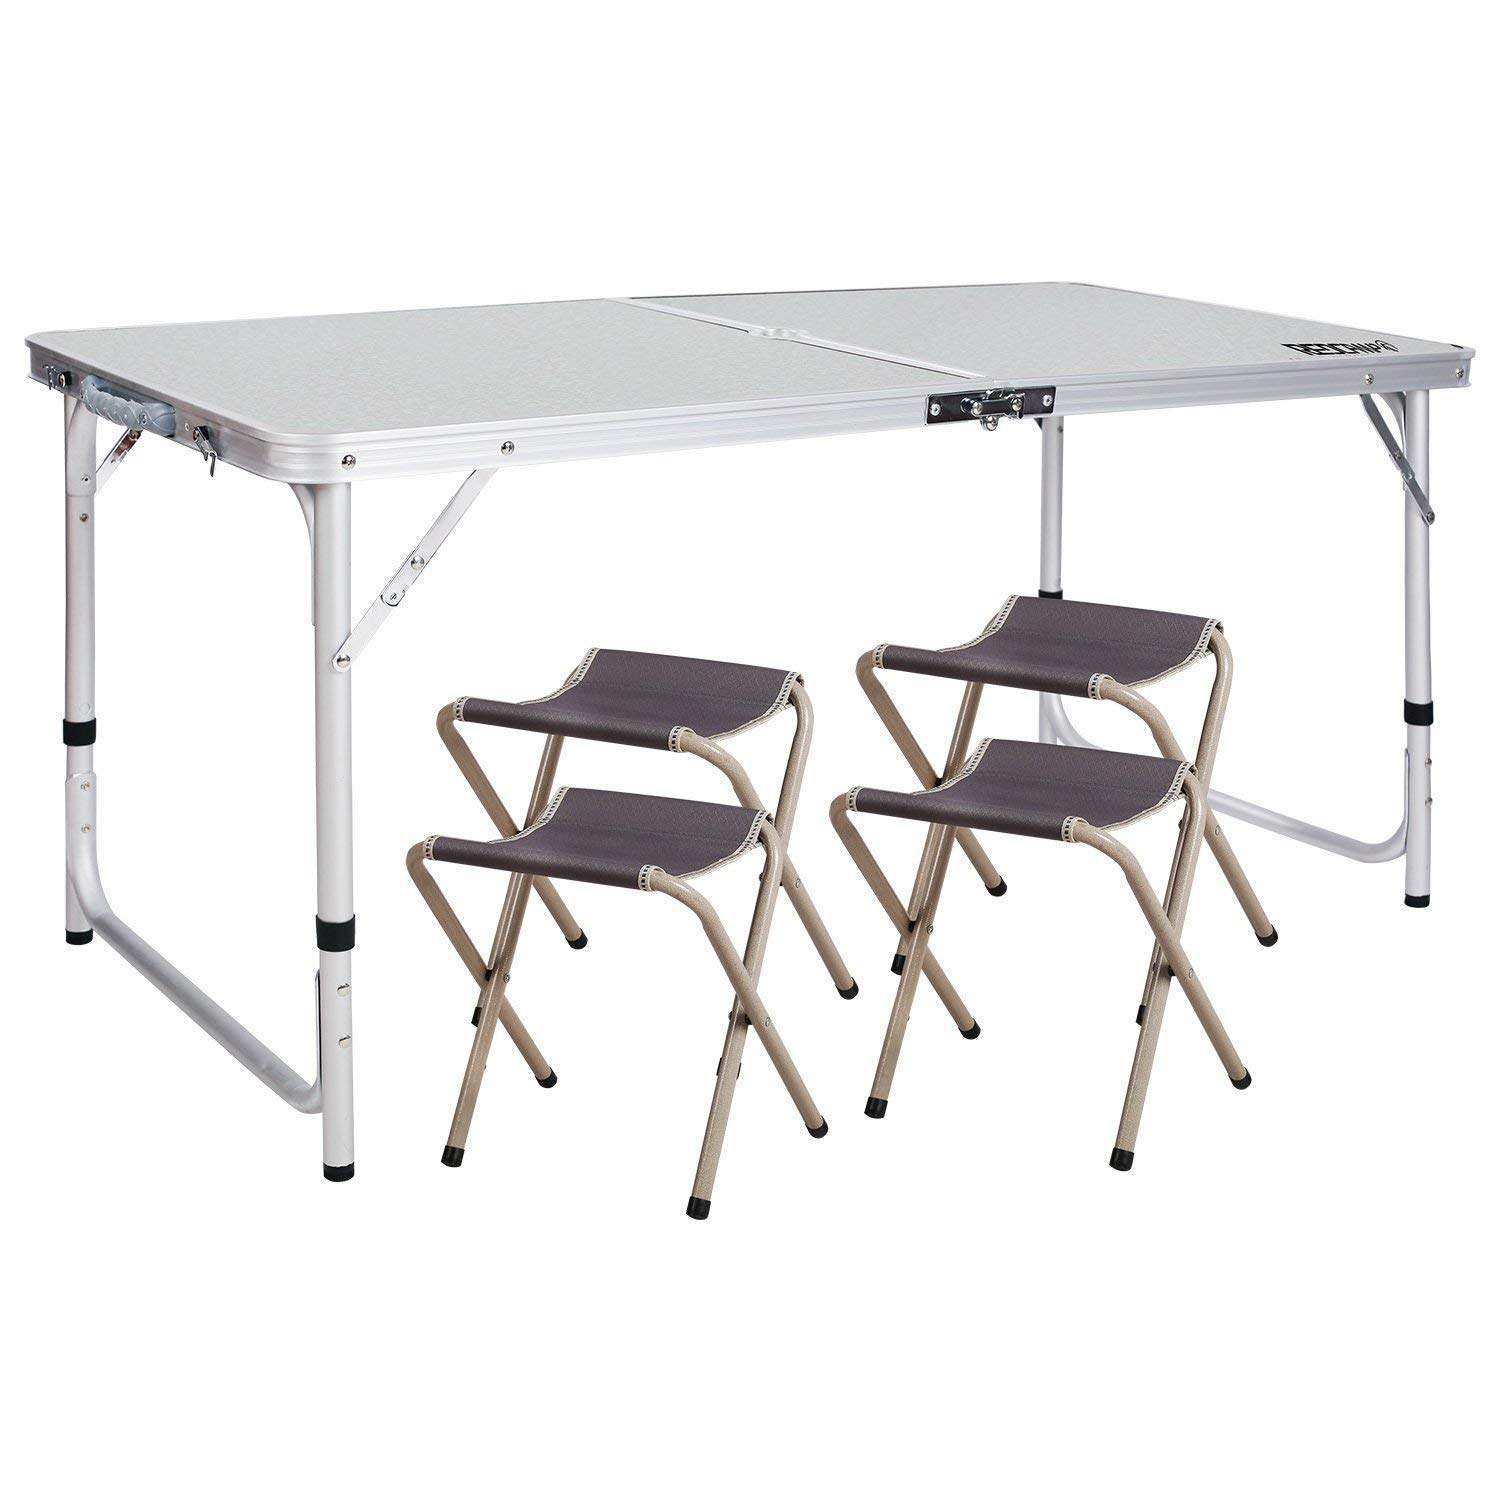 REDCAMP Outdoor Picnic Table Adjustable, Folding Camping Table with 4 Chairs, Aluminum White 47.2''x23.6''x27''